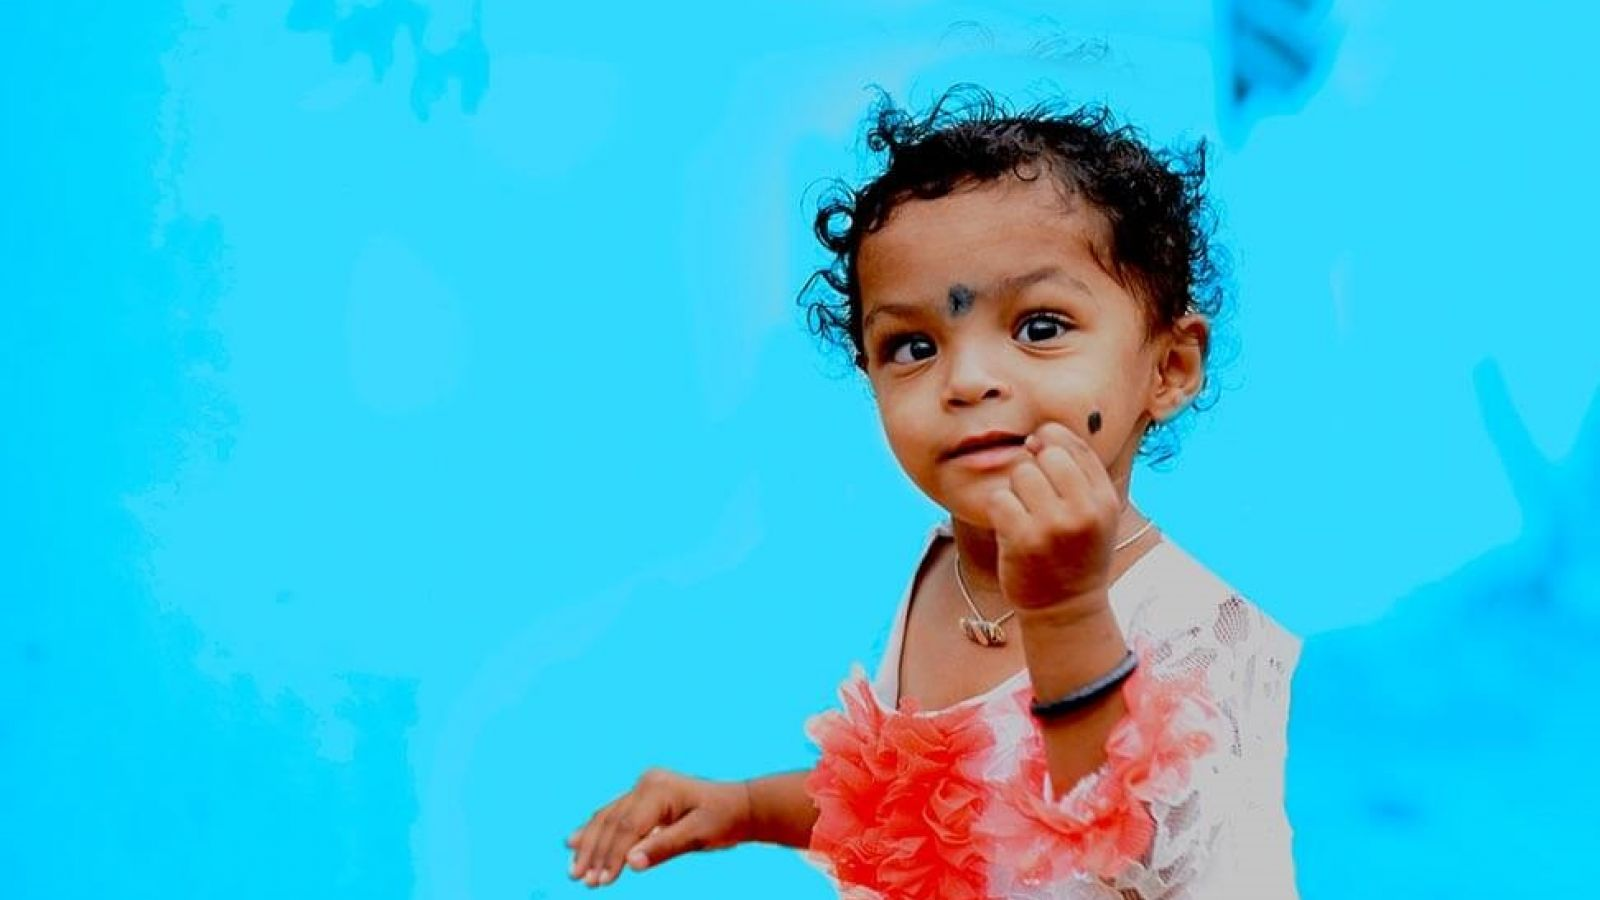 Rishita - one of the smallest recorded babies born in India